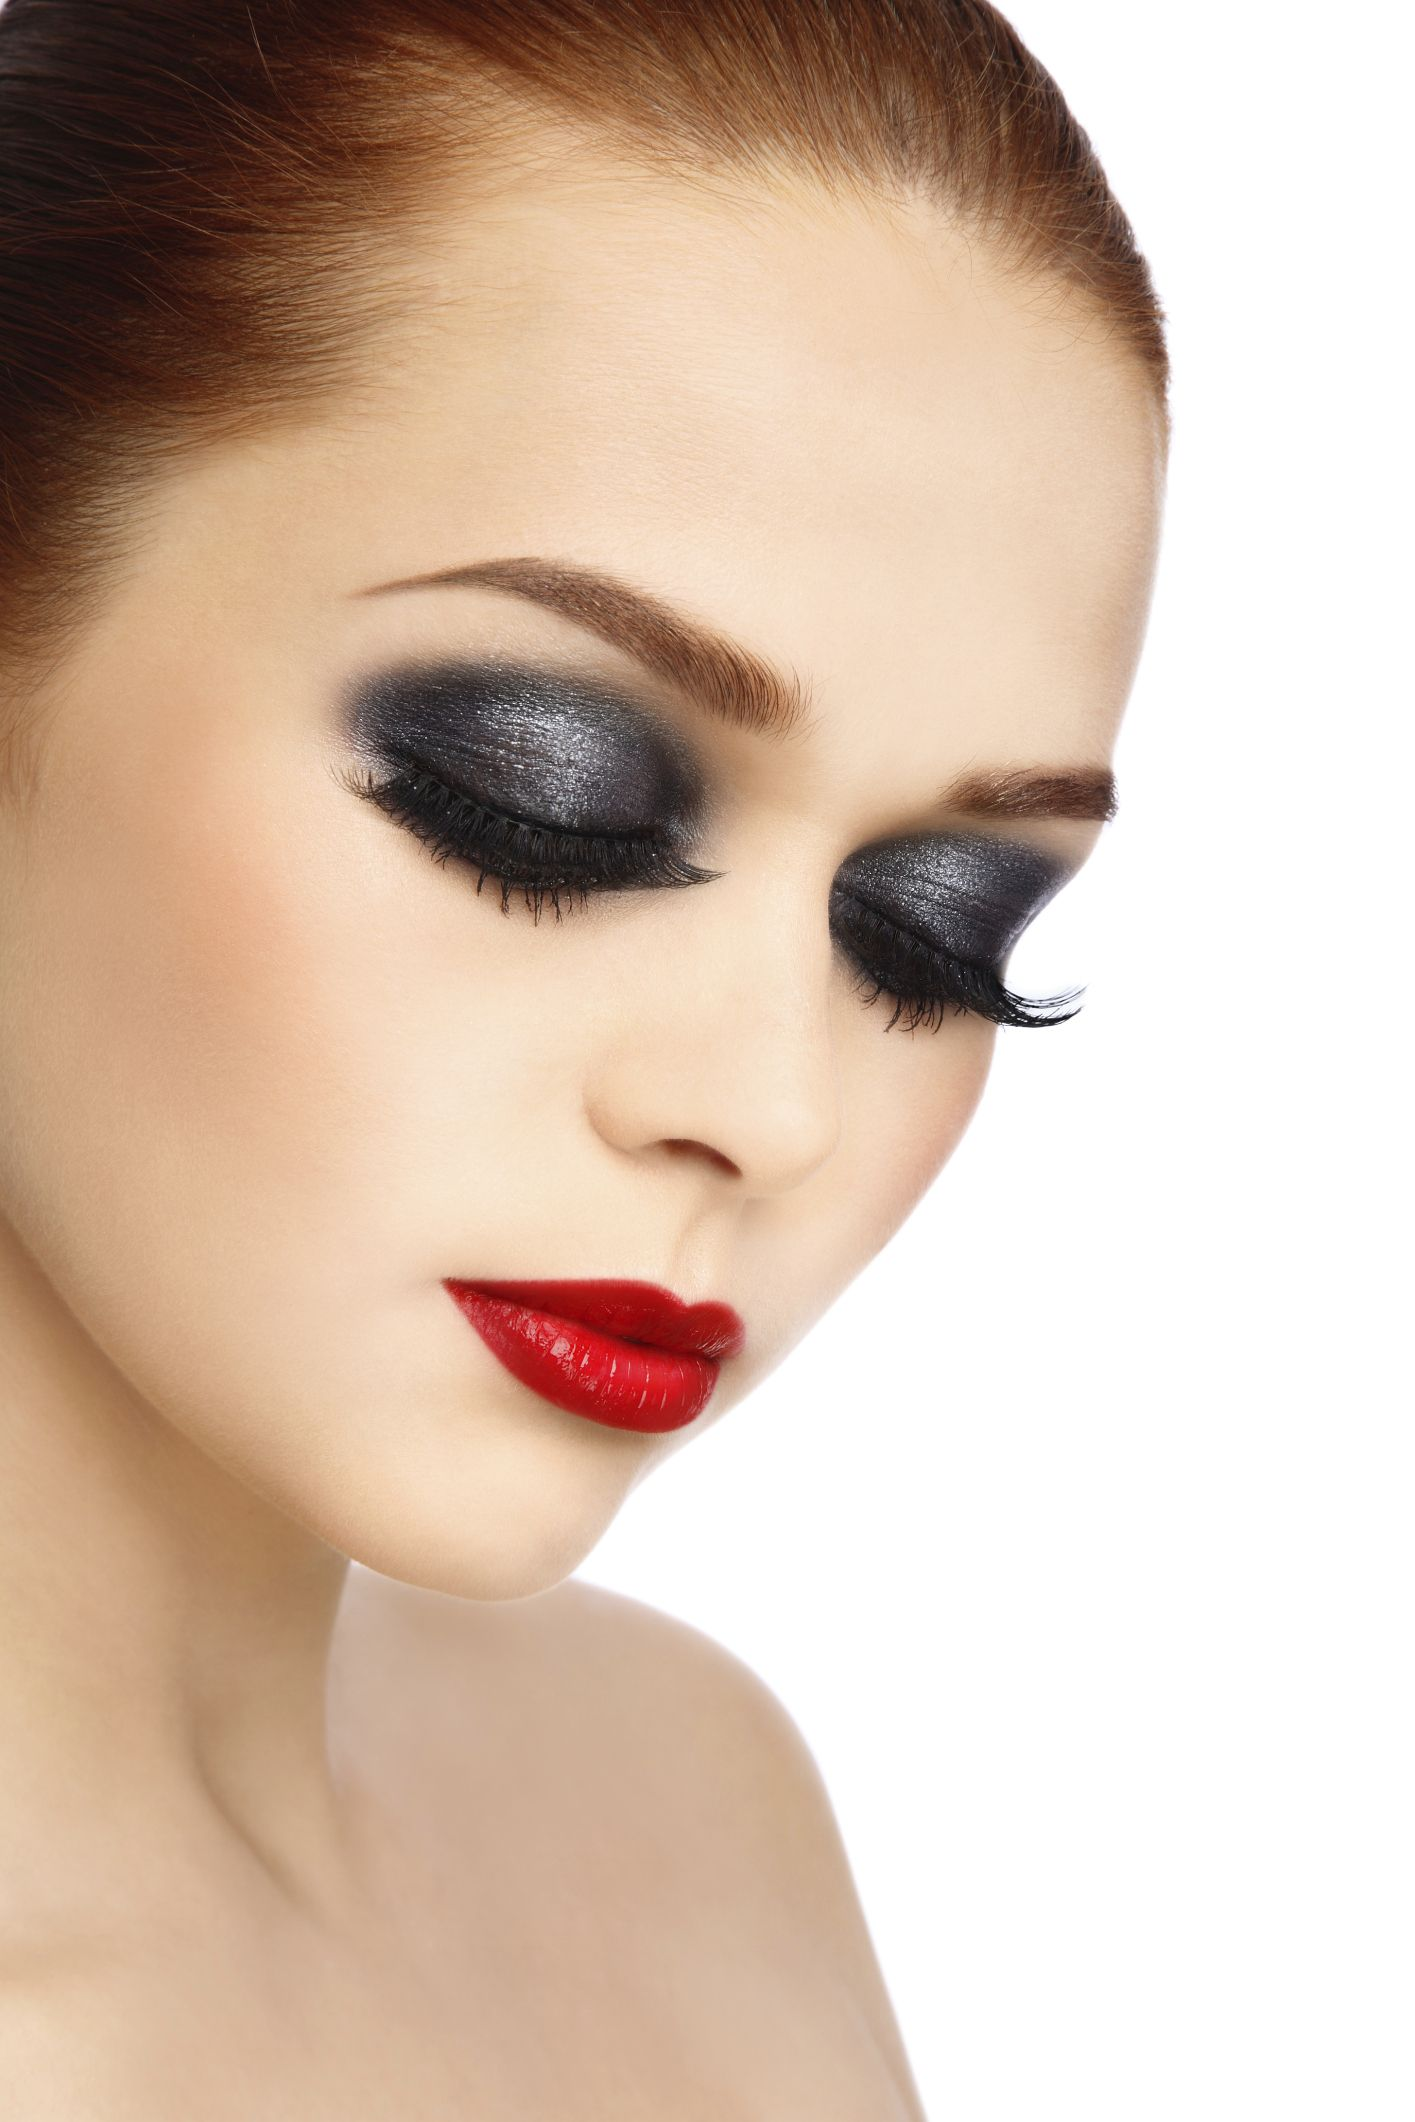 Flawless Skin Red Lipstick And Neutral Shadow With Black Eyeliner